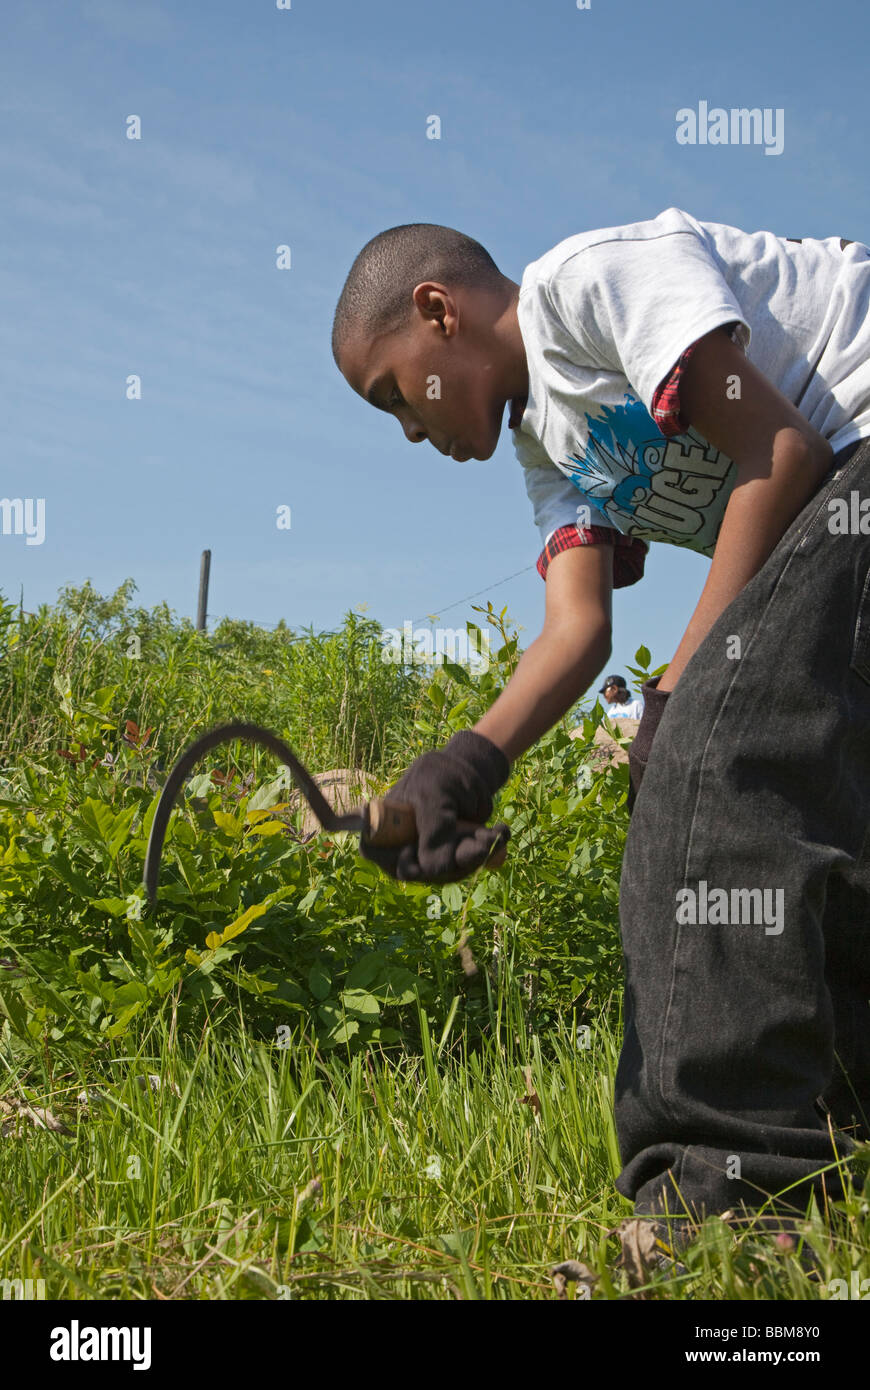 Boy cuts grass with a sickle - Stock Image